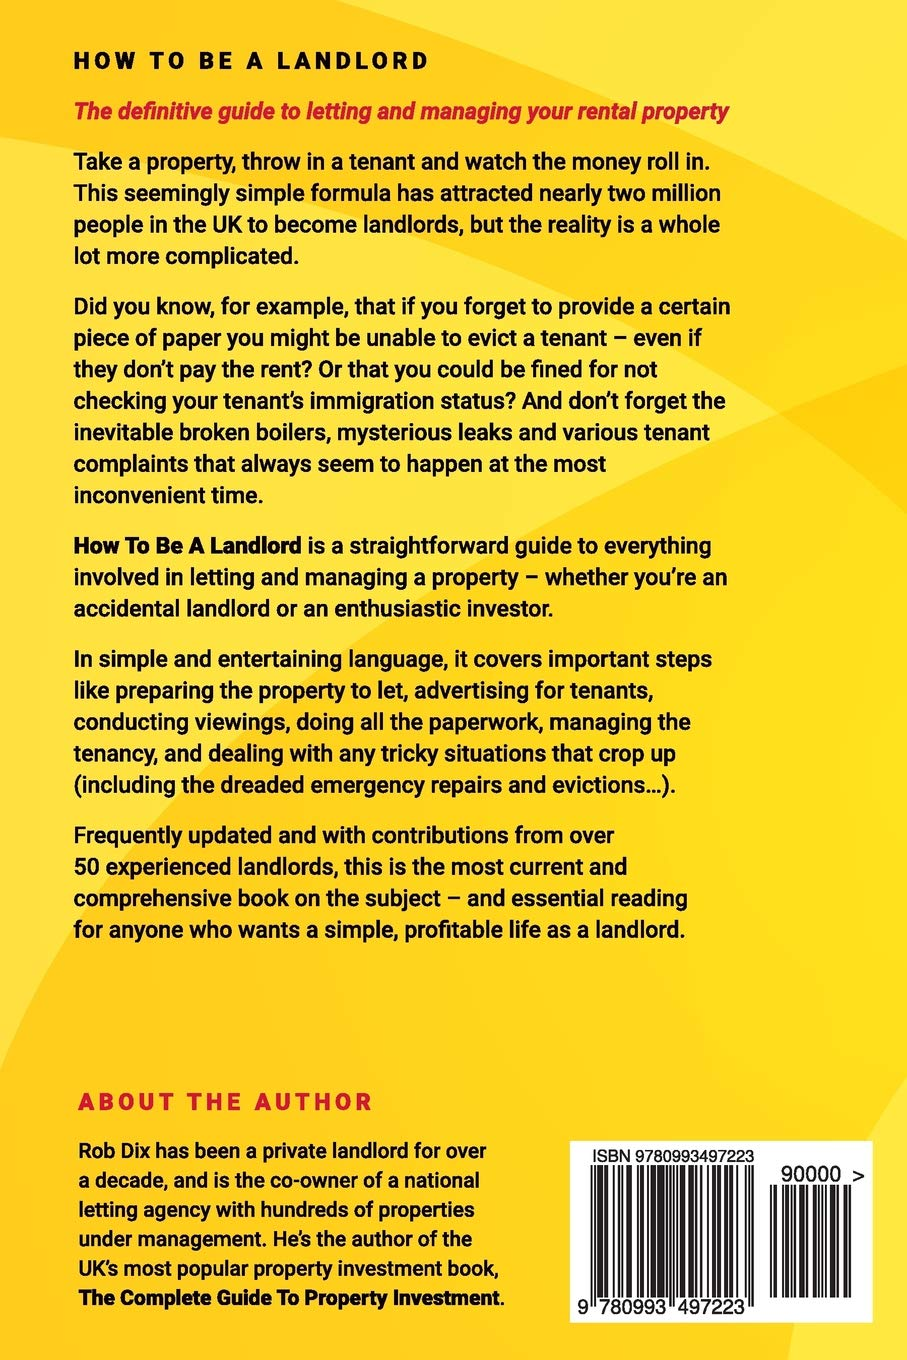 How To Be A Landlord: The Definitive Guide to Letting and